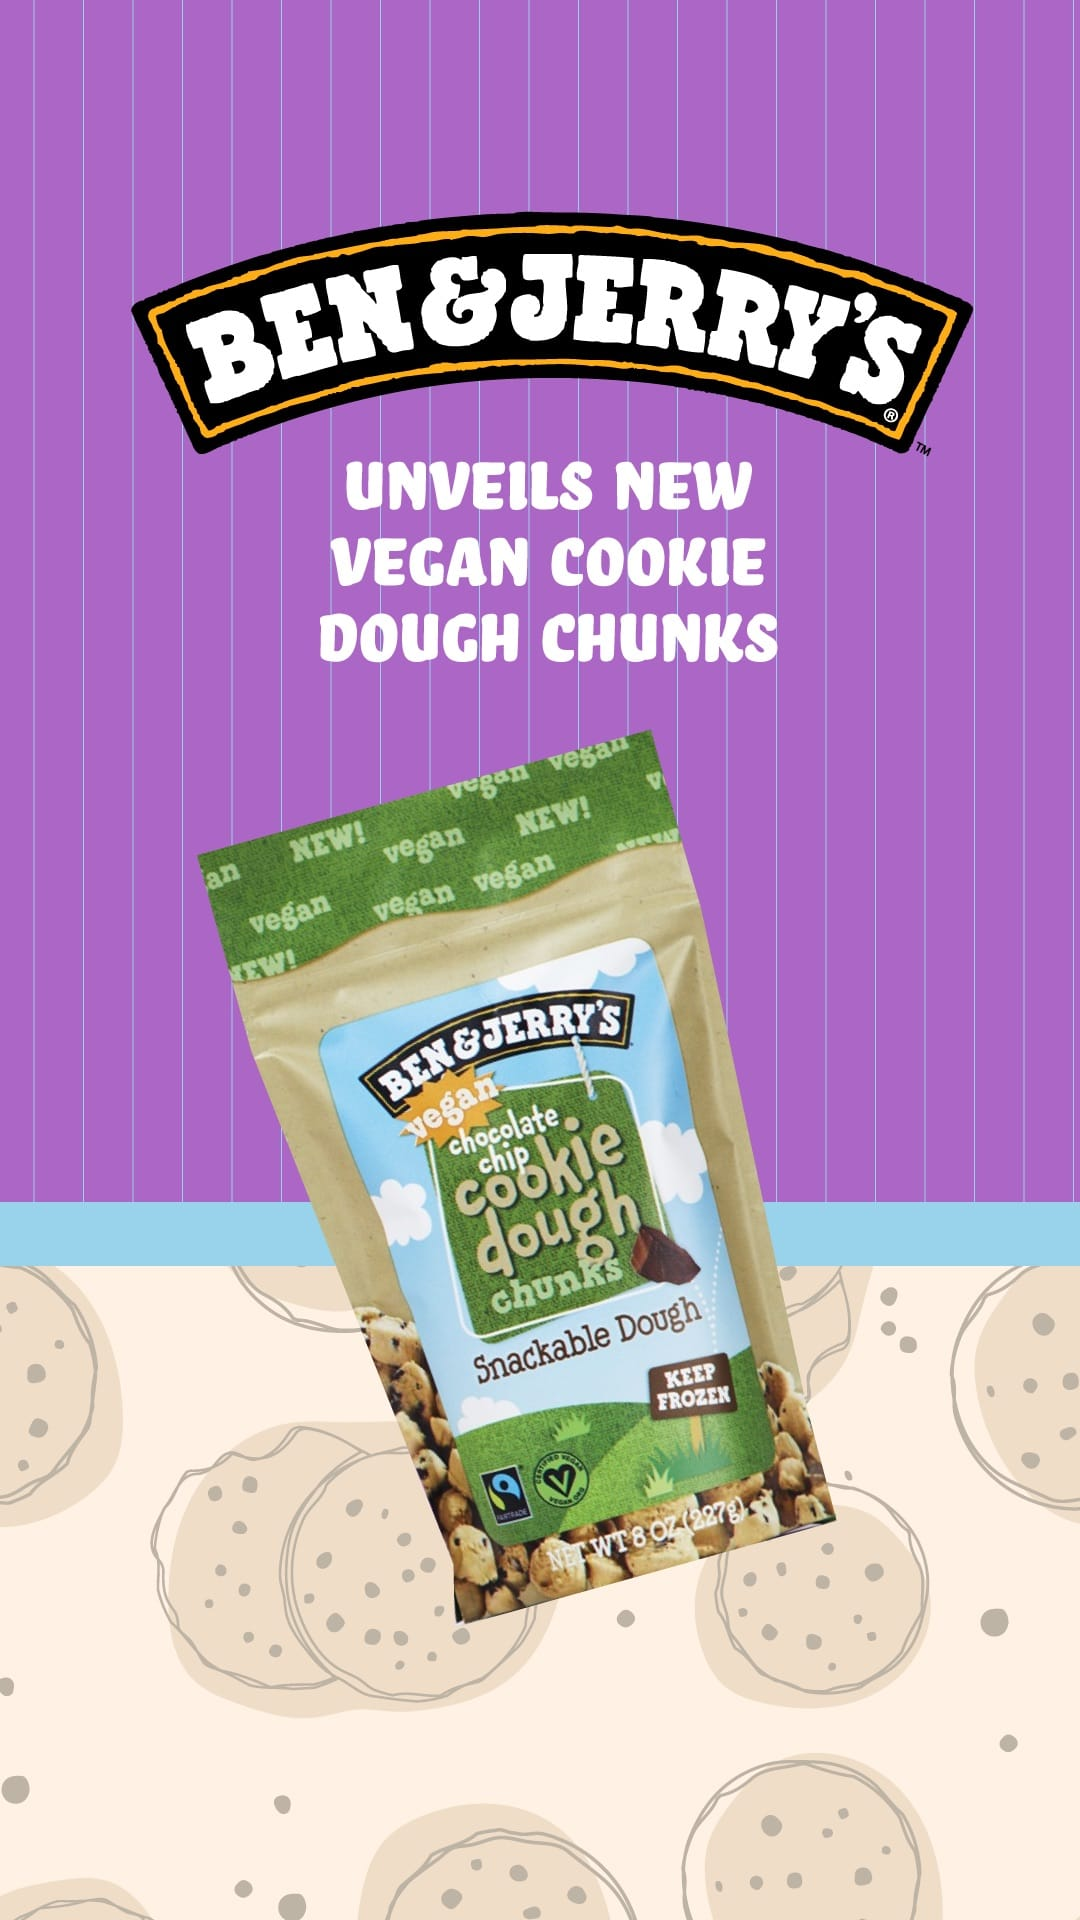 Ben & Jerry's Unveils New Vegan Cookie Dough Chunks